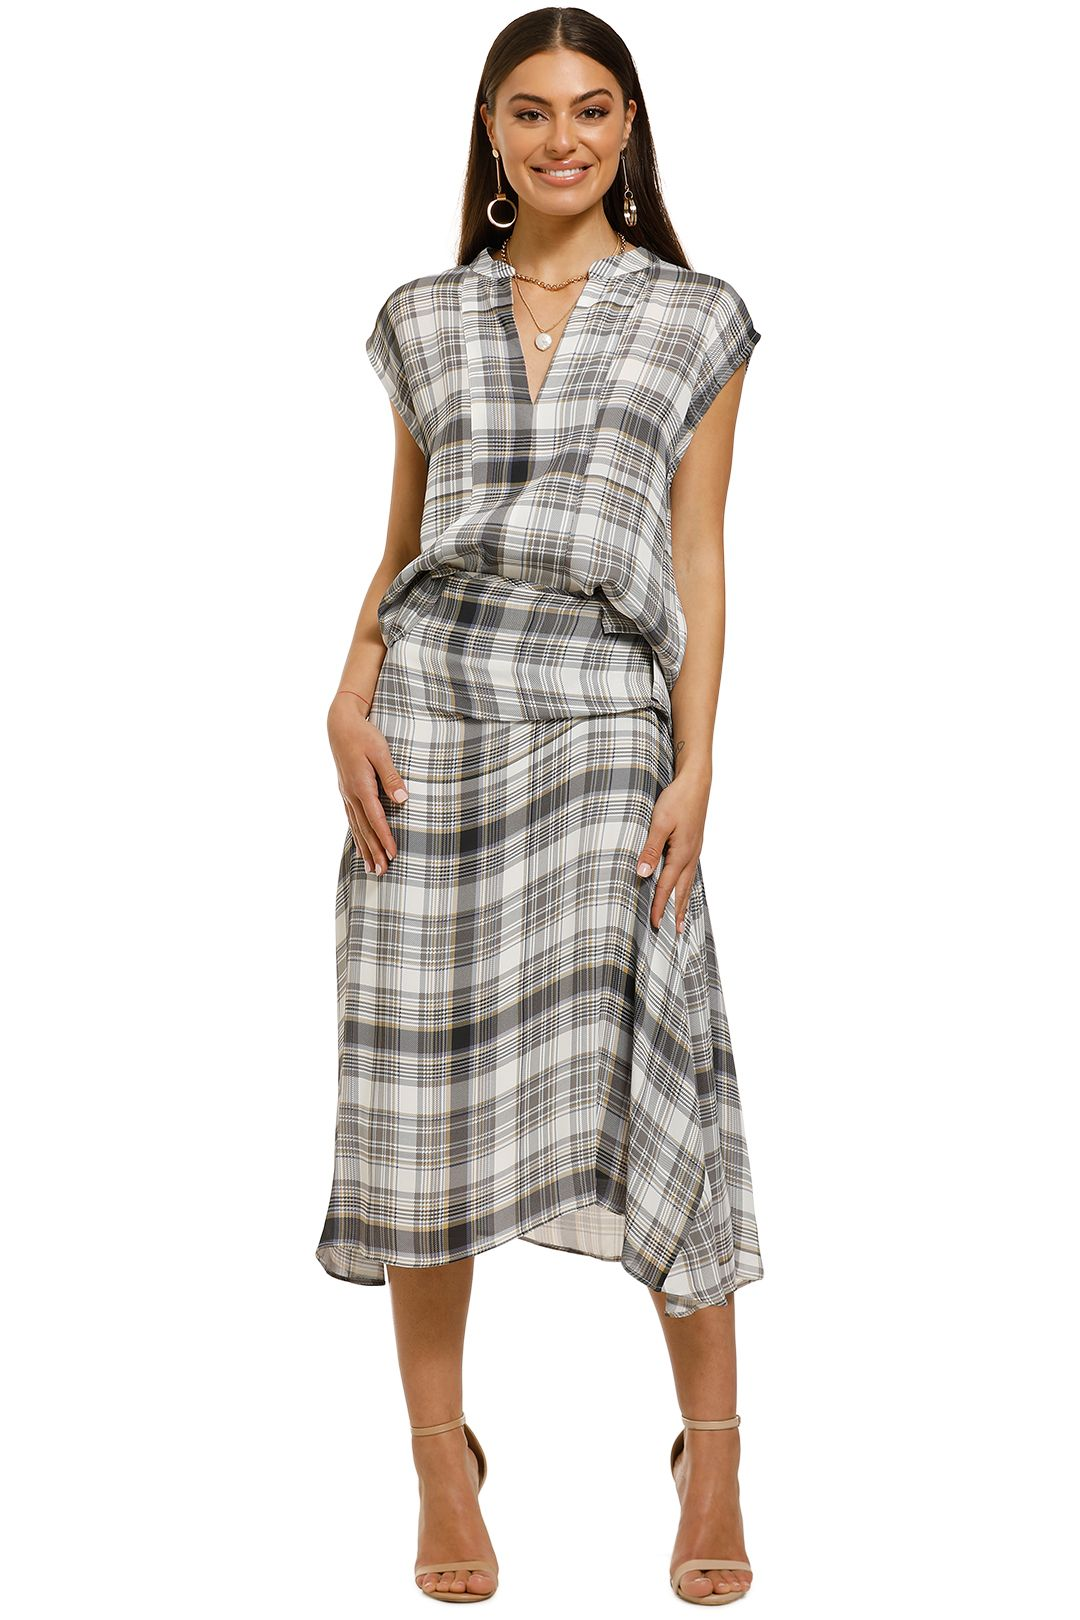 FWRD-The-Label-Kelda-Top-Spring-Plaid-Front